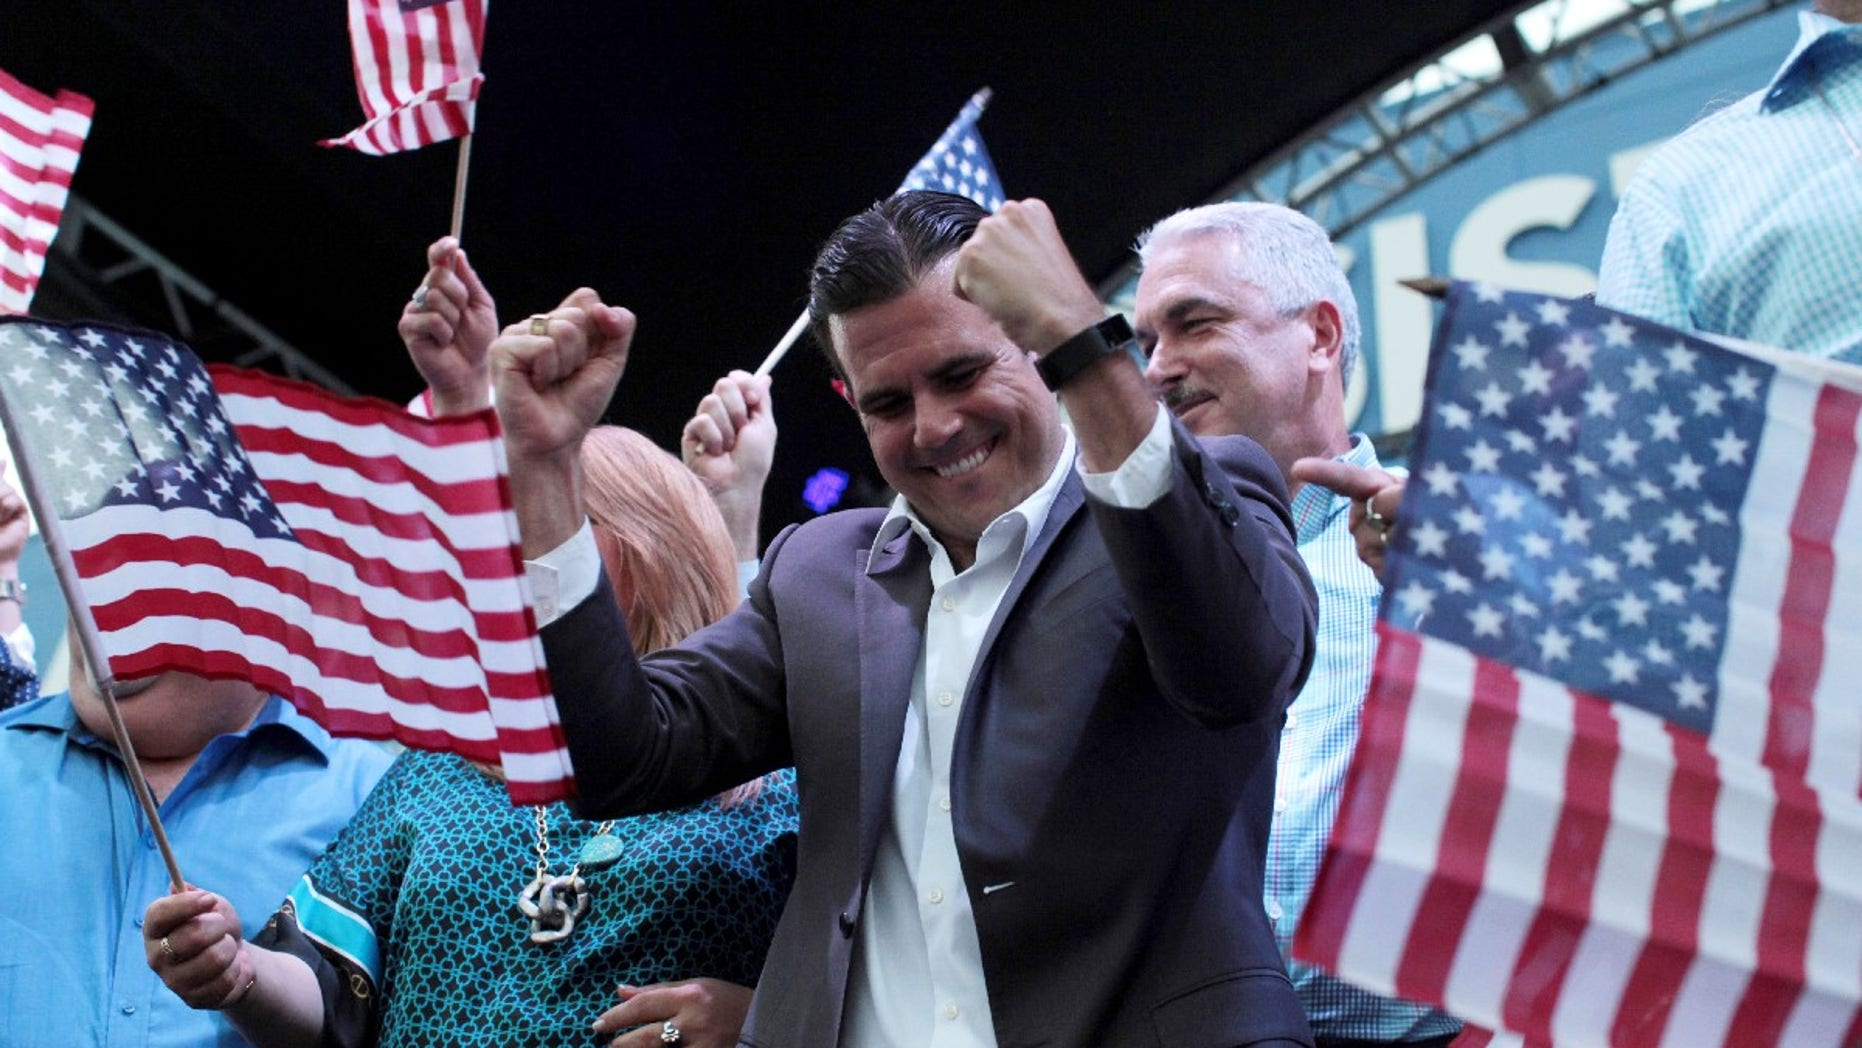 FILE -- Puerto Rico Governor Ricardo Rosello (C) celebrates after the economically struggling U.S. island territory voted overwhelmingly on Sunday in favour of becoming the 51st state, in San Juan, Puerto Rico June 11, 2017.